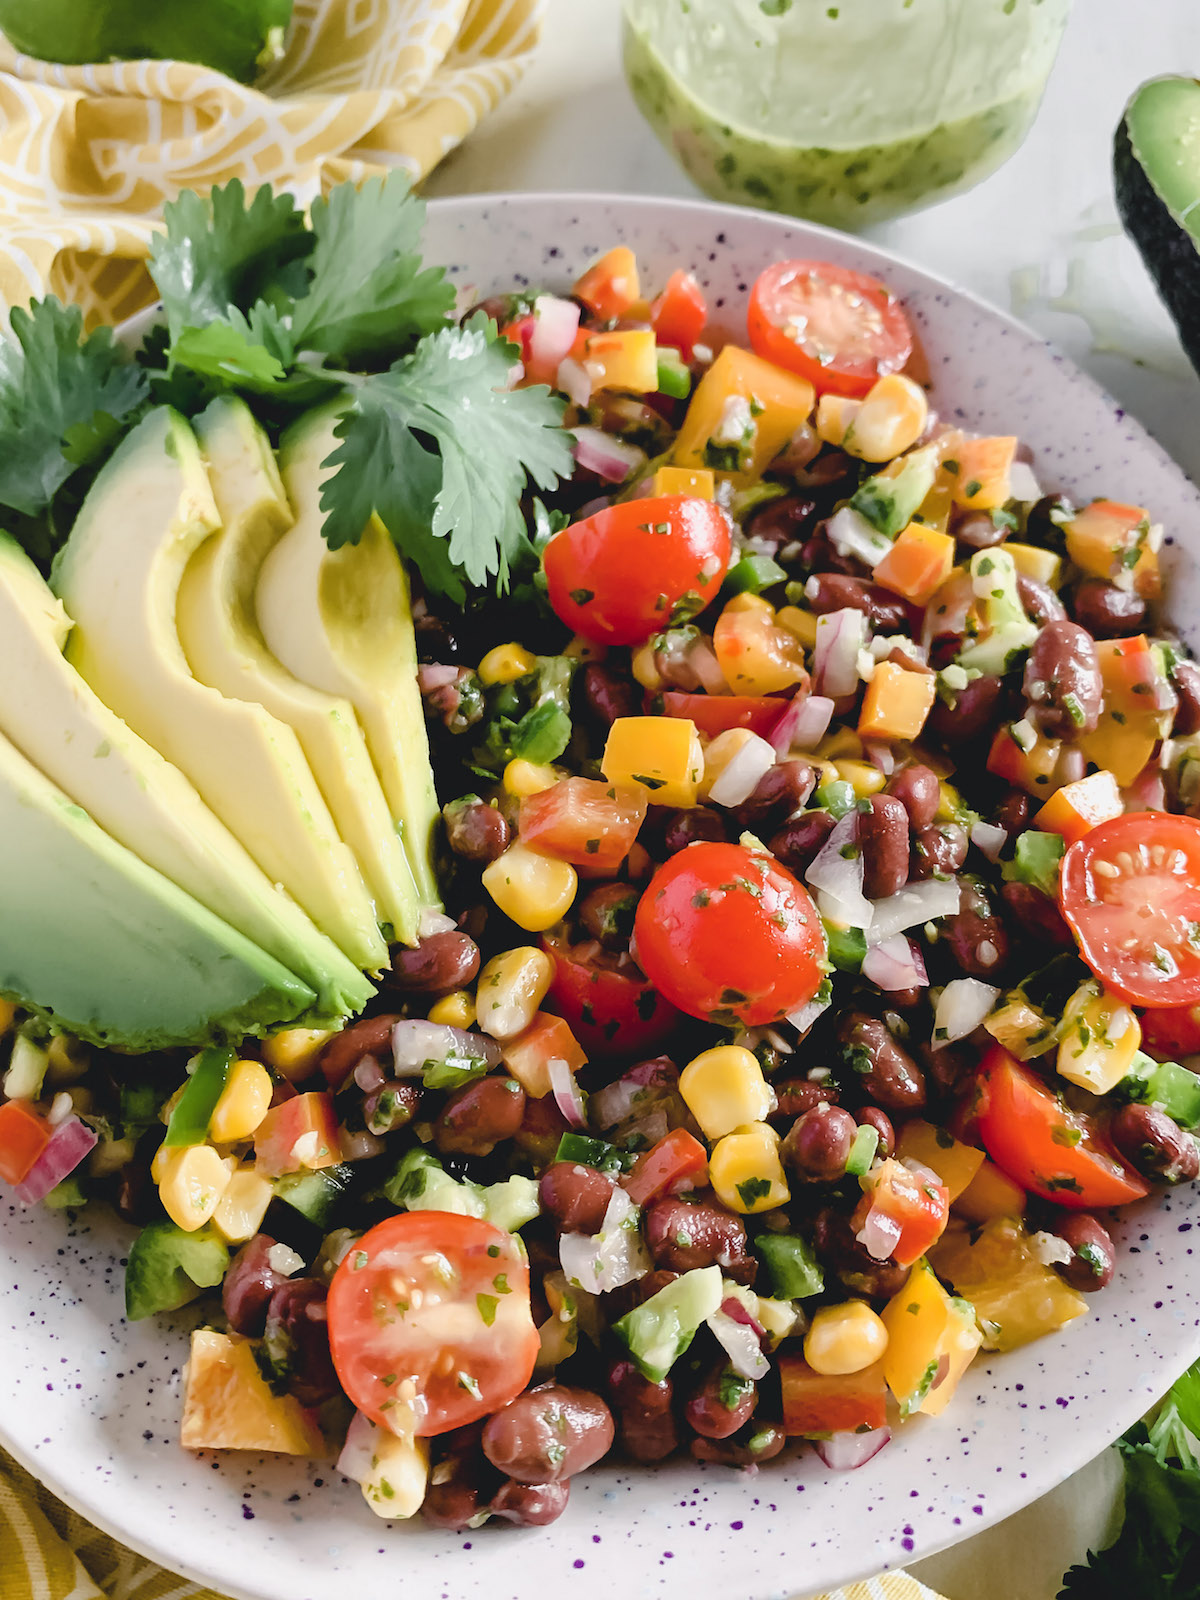 Fiesta salad in a speckled bowl with sliced avocado on top.